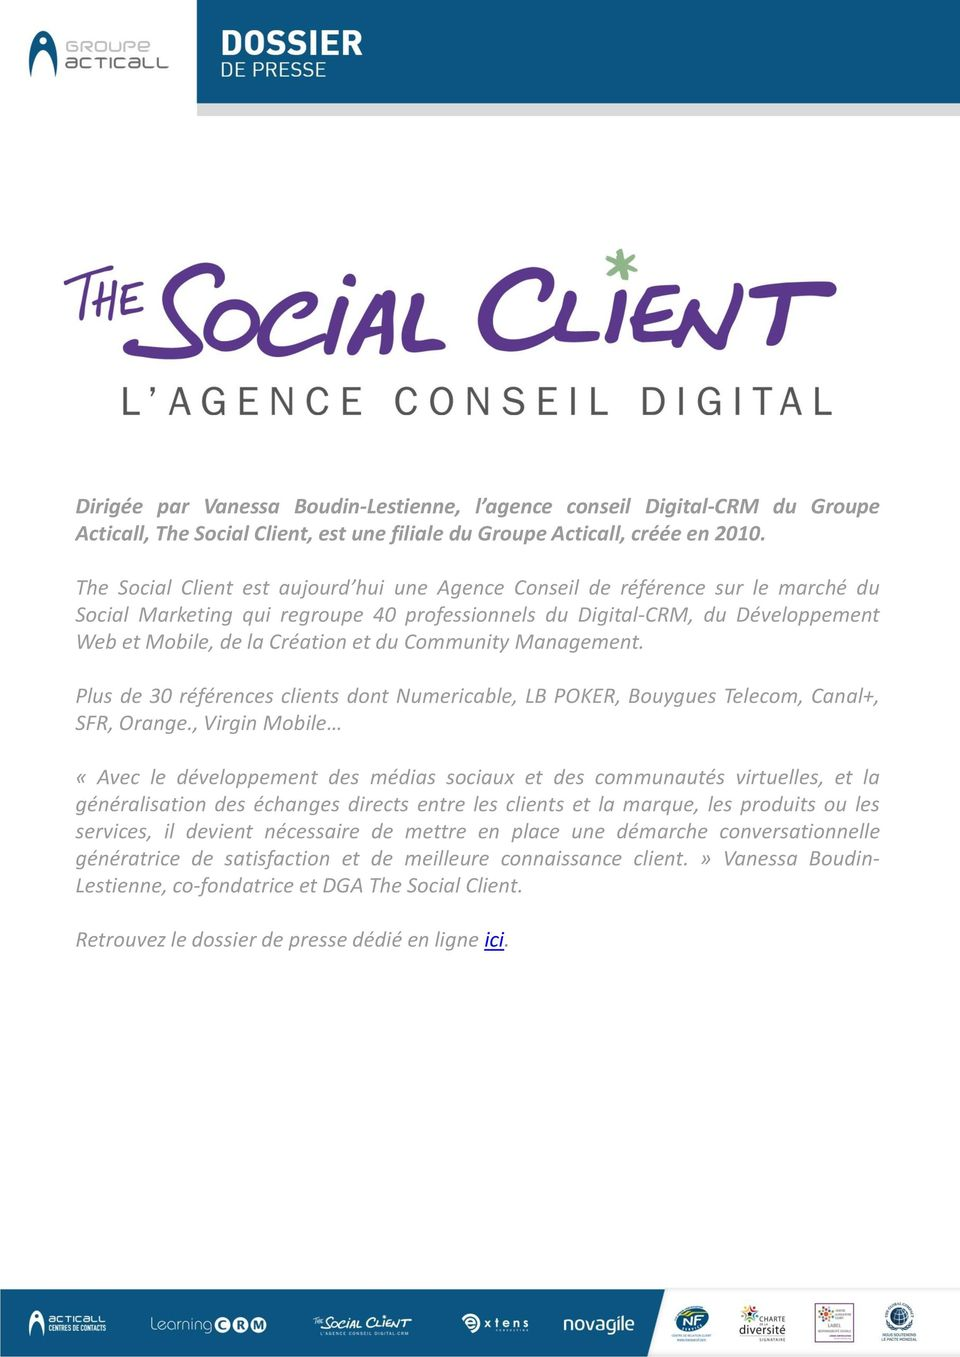 Community Management. Plus de 30 références clients dont Numericable, LB POKER, Bouygues Telecom, Canal+, SFR, Orange.